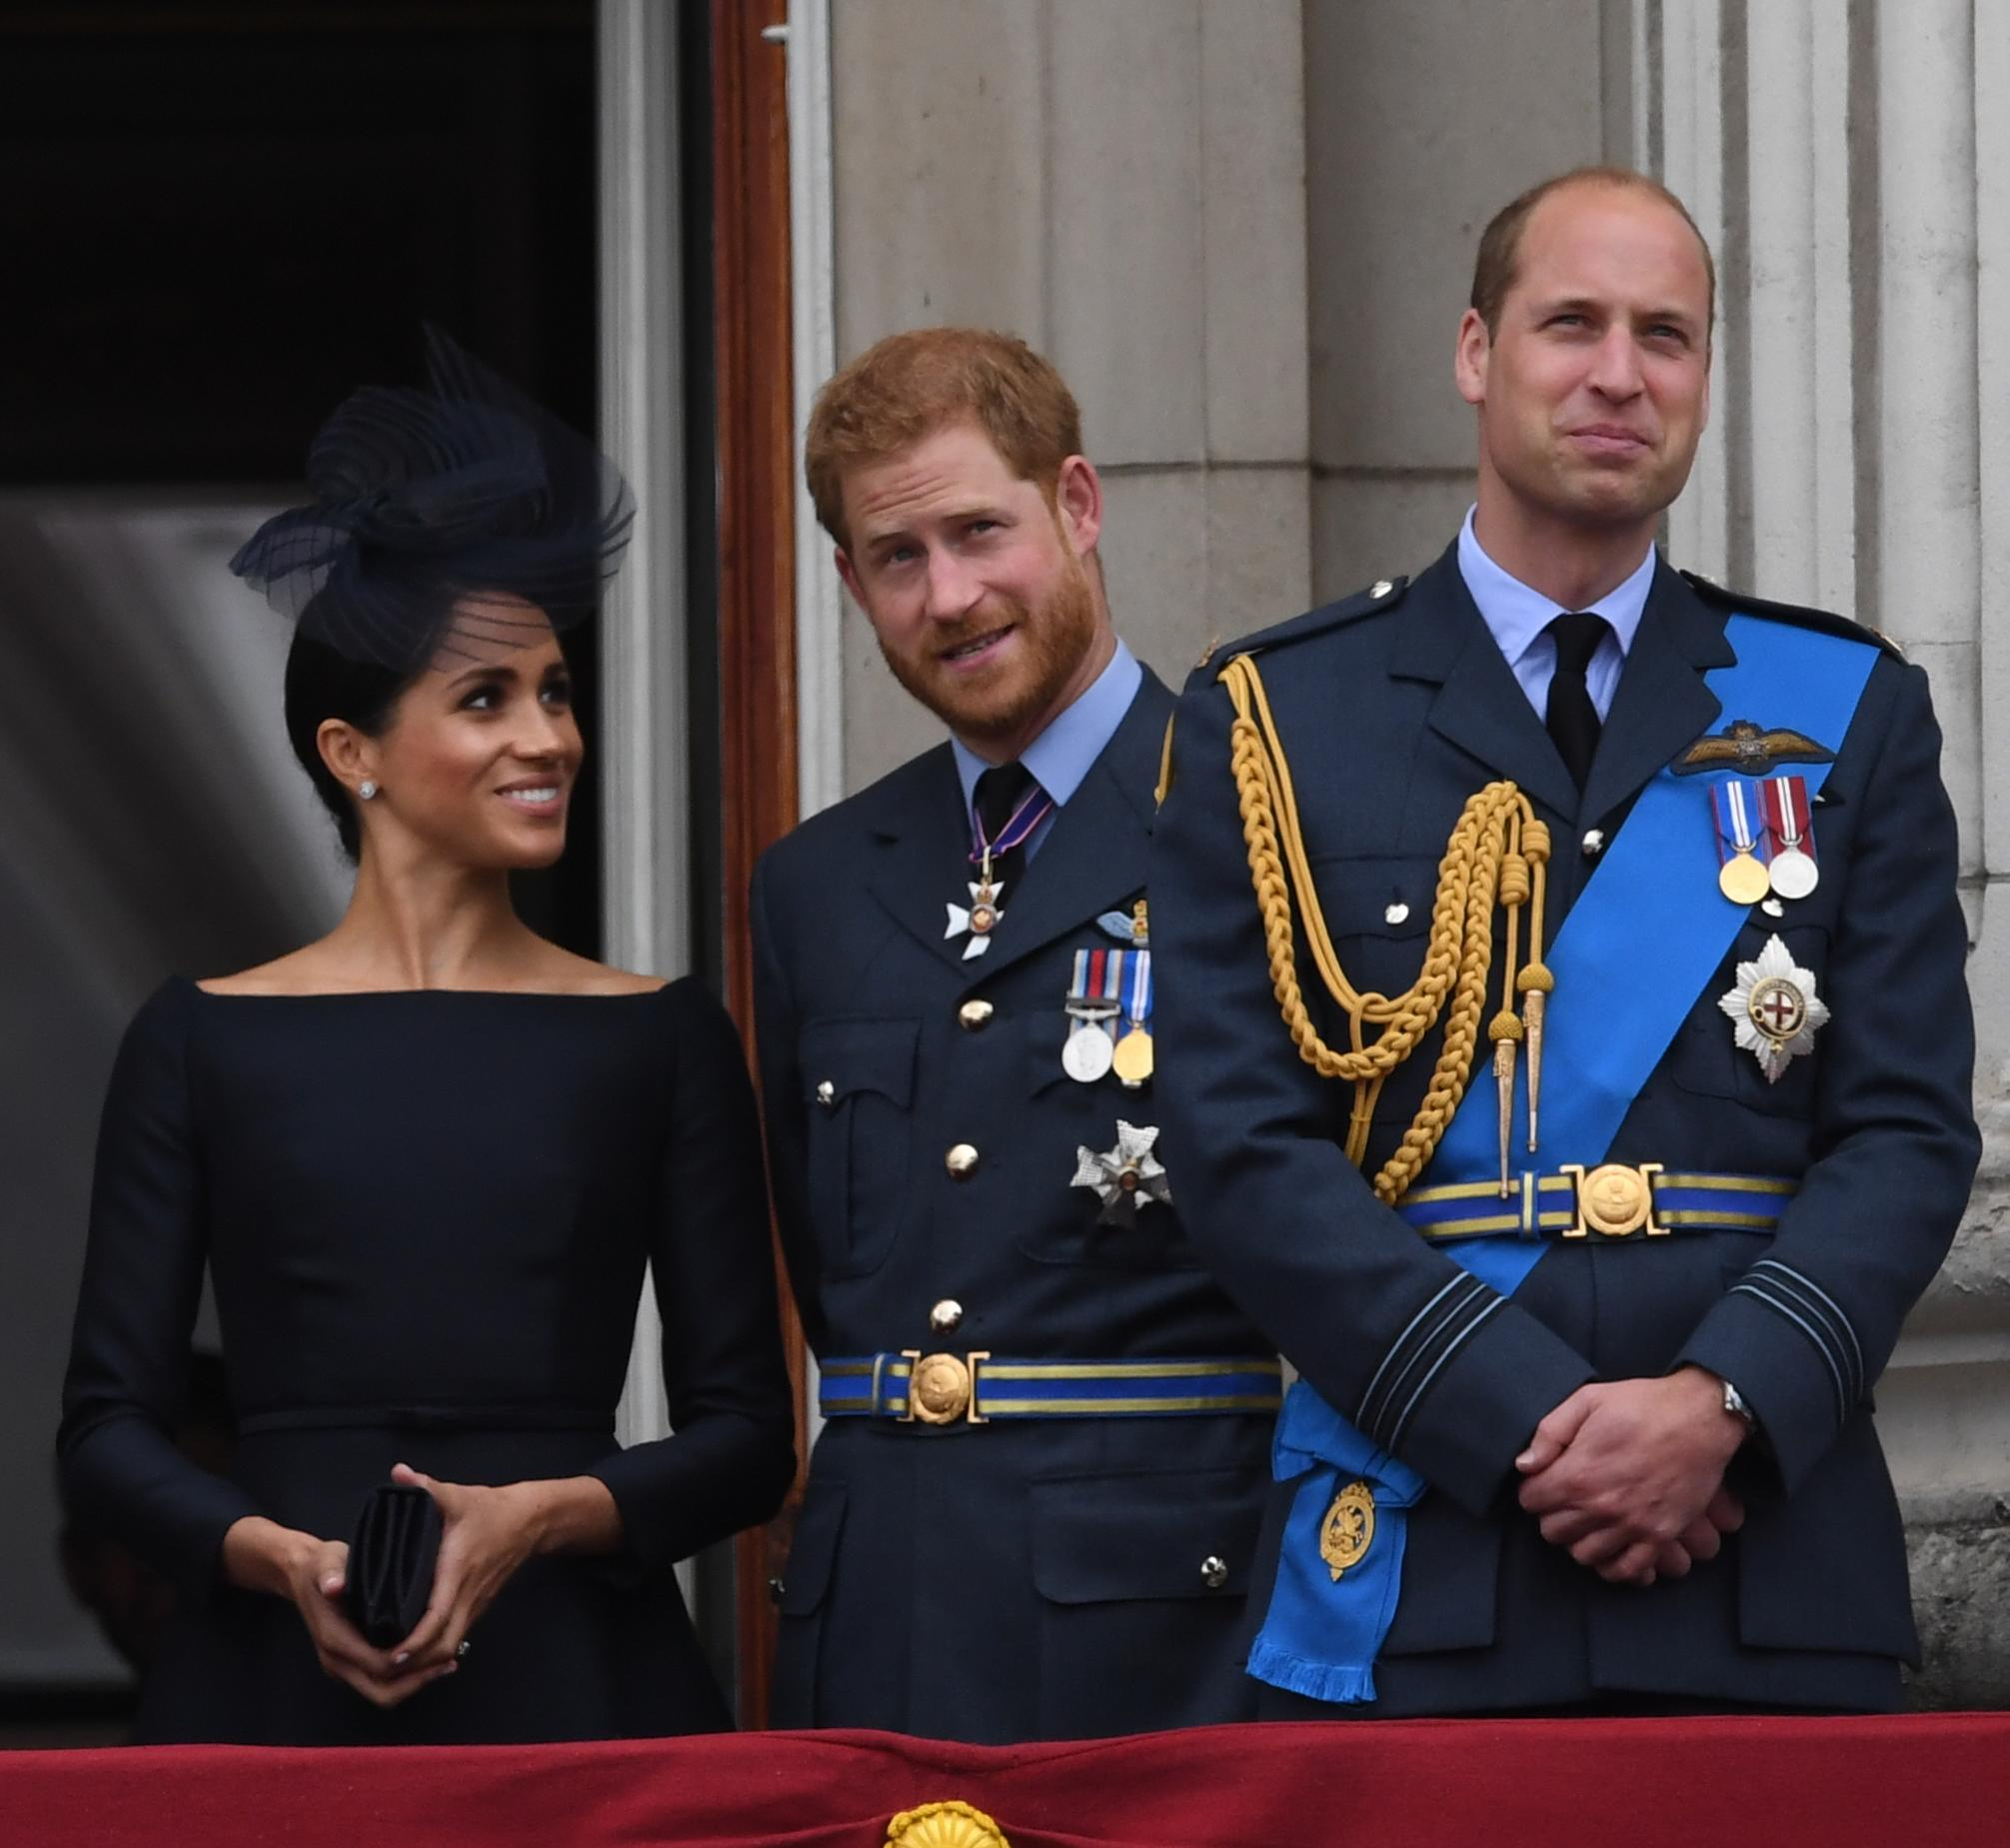 (left to right) The Prince of Wales, Duke of York, Duchess of Cornwall, Queen Elizabeth II, Duchess of Sussex, Duke of Sussex and Duke of Cambridge on the balcony at Buckingham Palace where they watched a Royal Air Force flypast over central London to mark the centenary of the Royal Air Force.